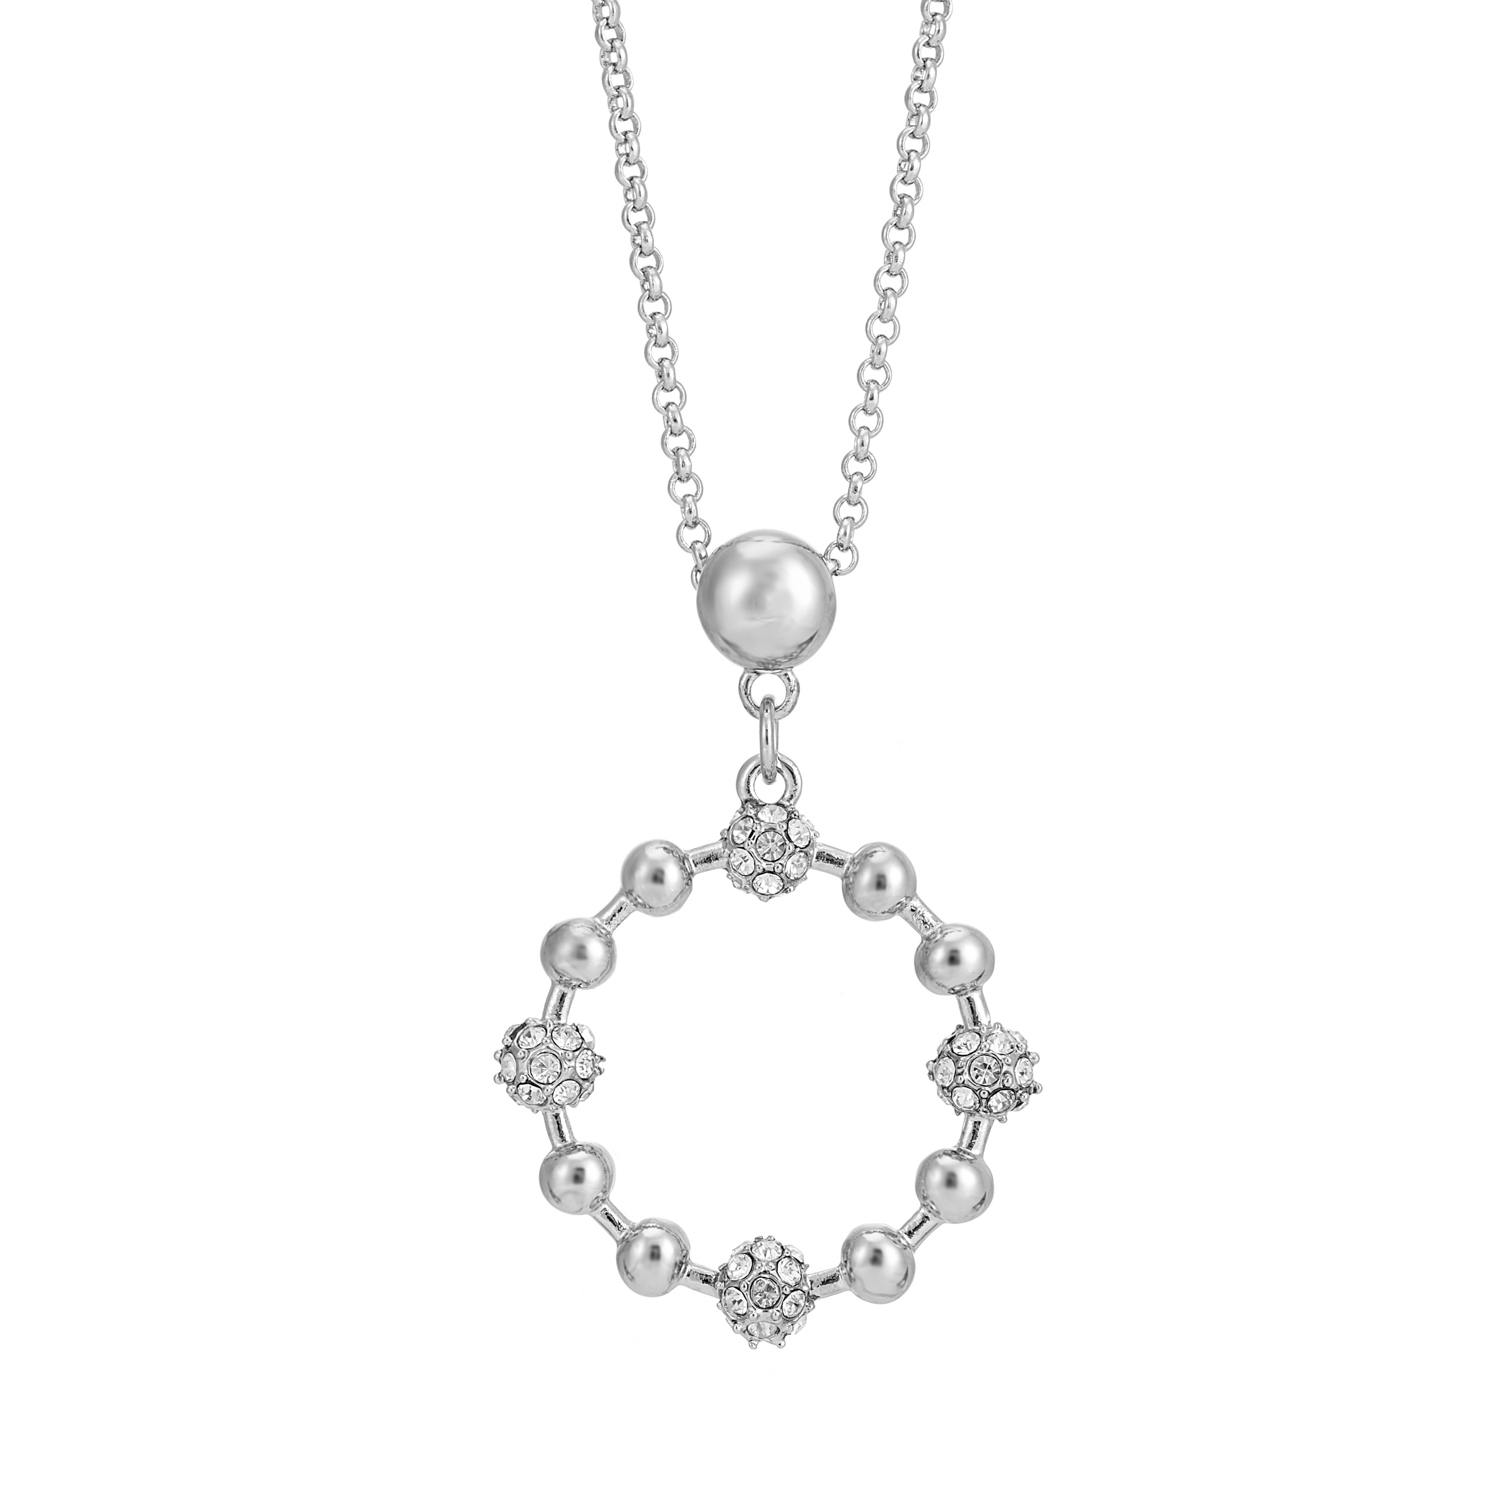 SILVER Cameo Crystal Cluster Necklace